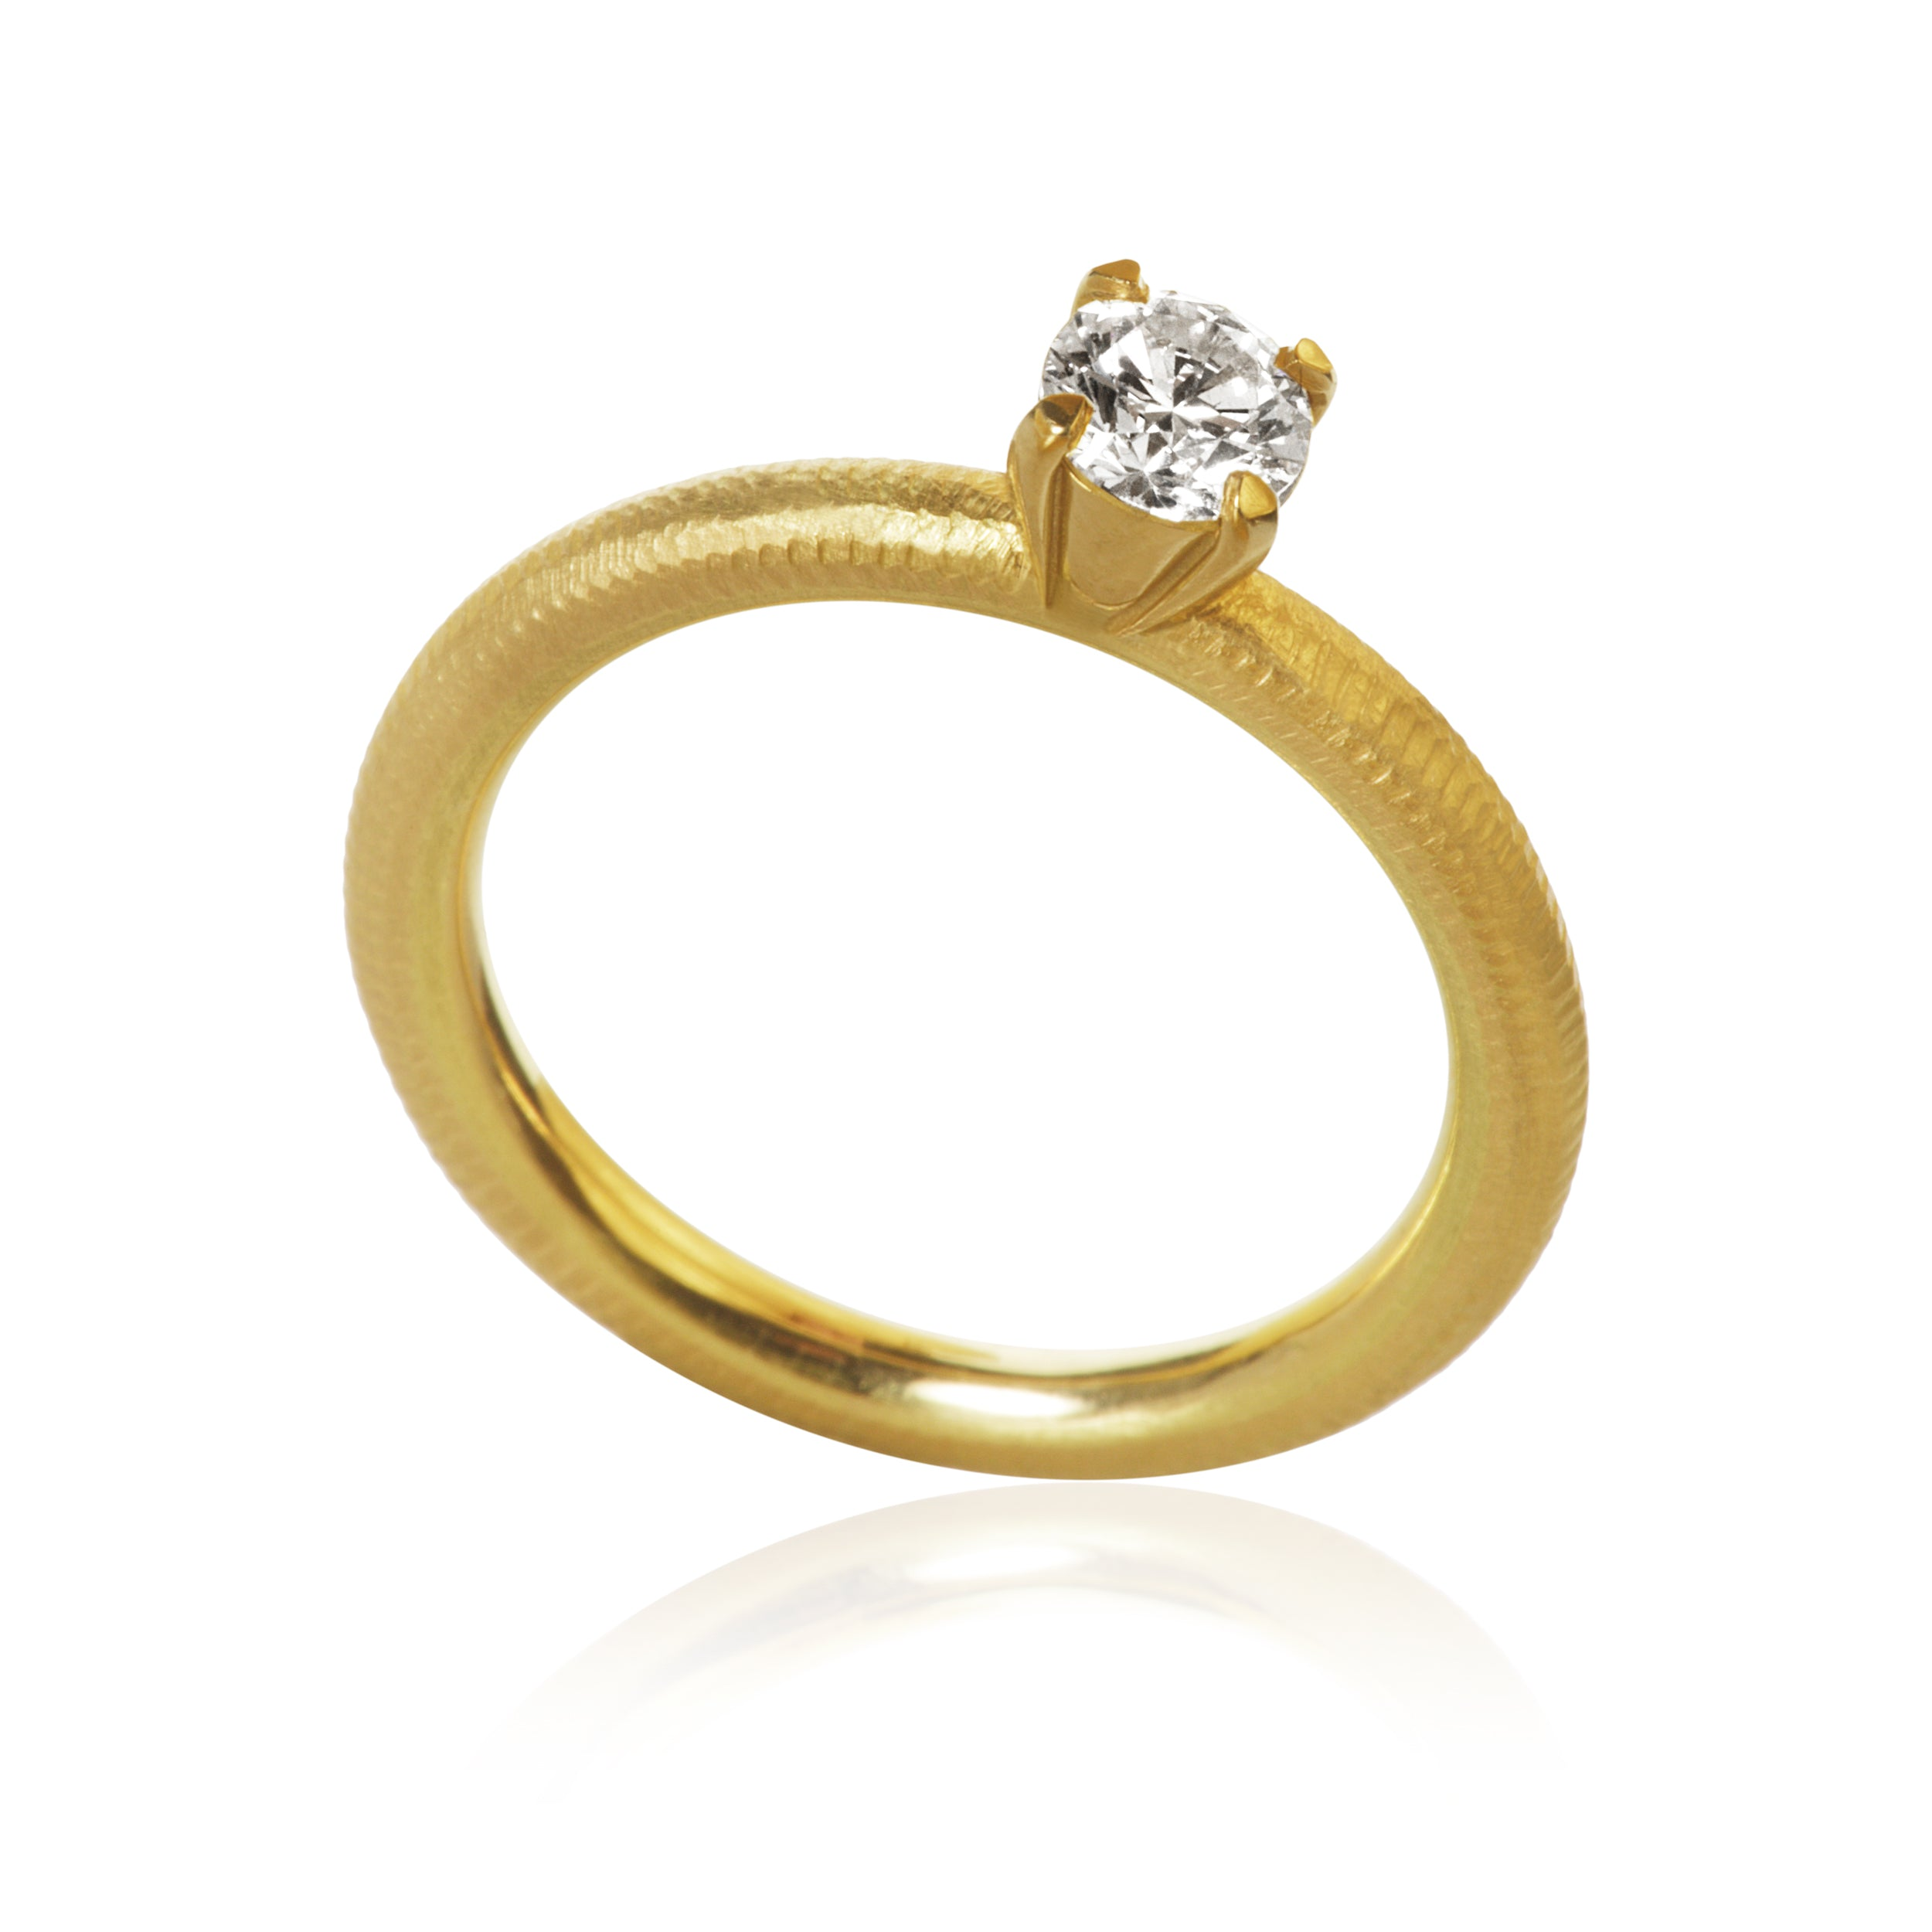 Lumina ring. With 1 brillant cut diamond. 0,40 ct. J, si1, Ex. cut.